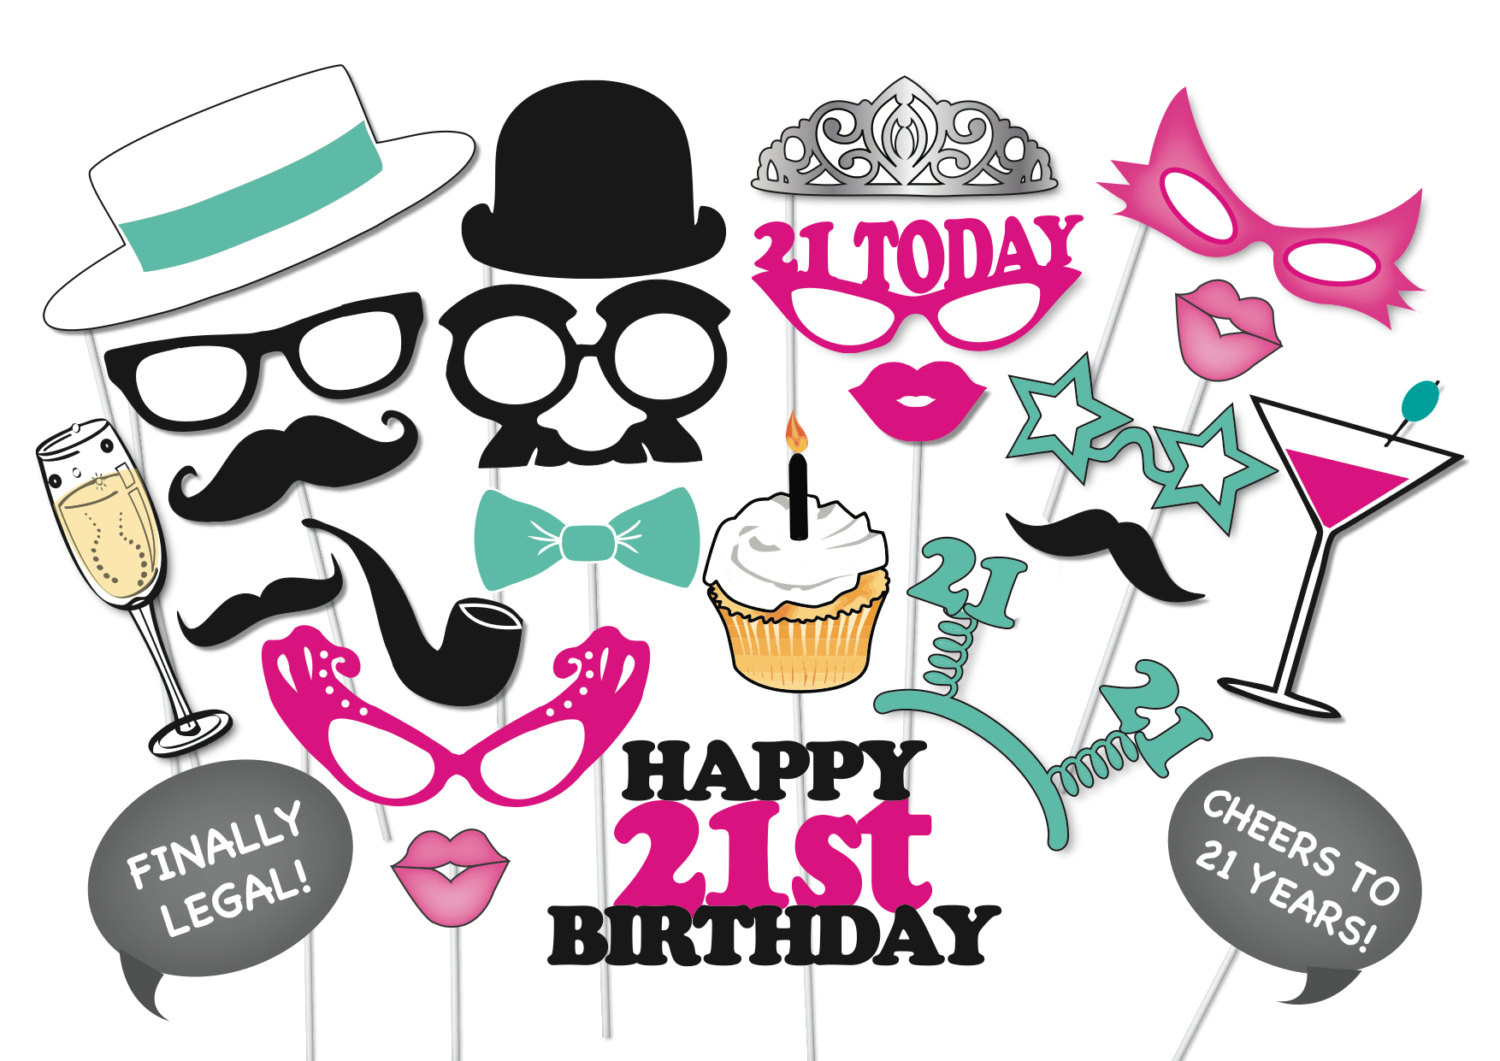 Free Printable Birthday Clipart at GetDrawings.com.